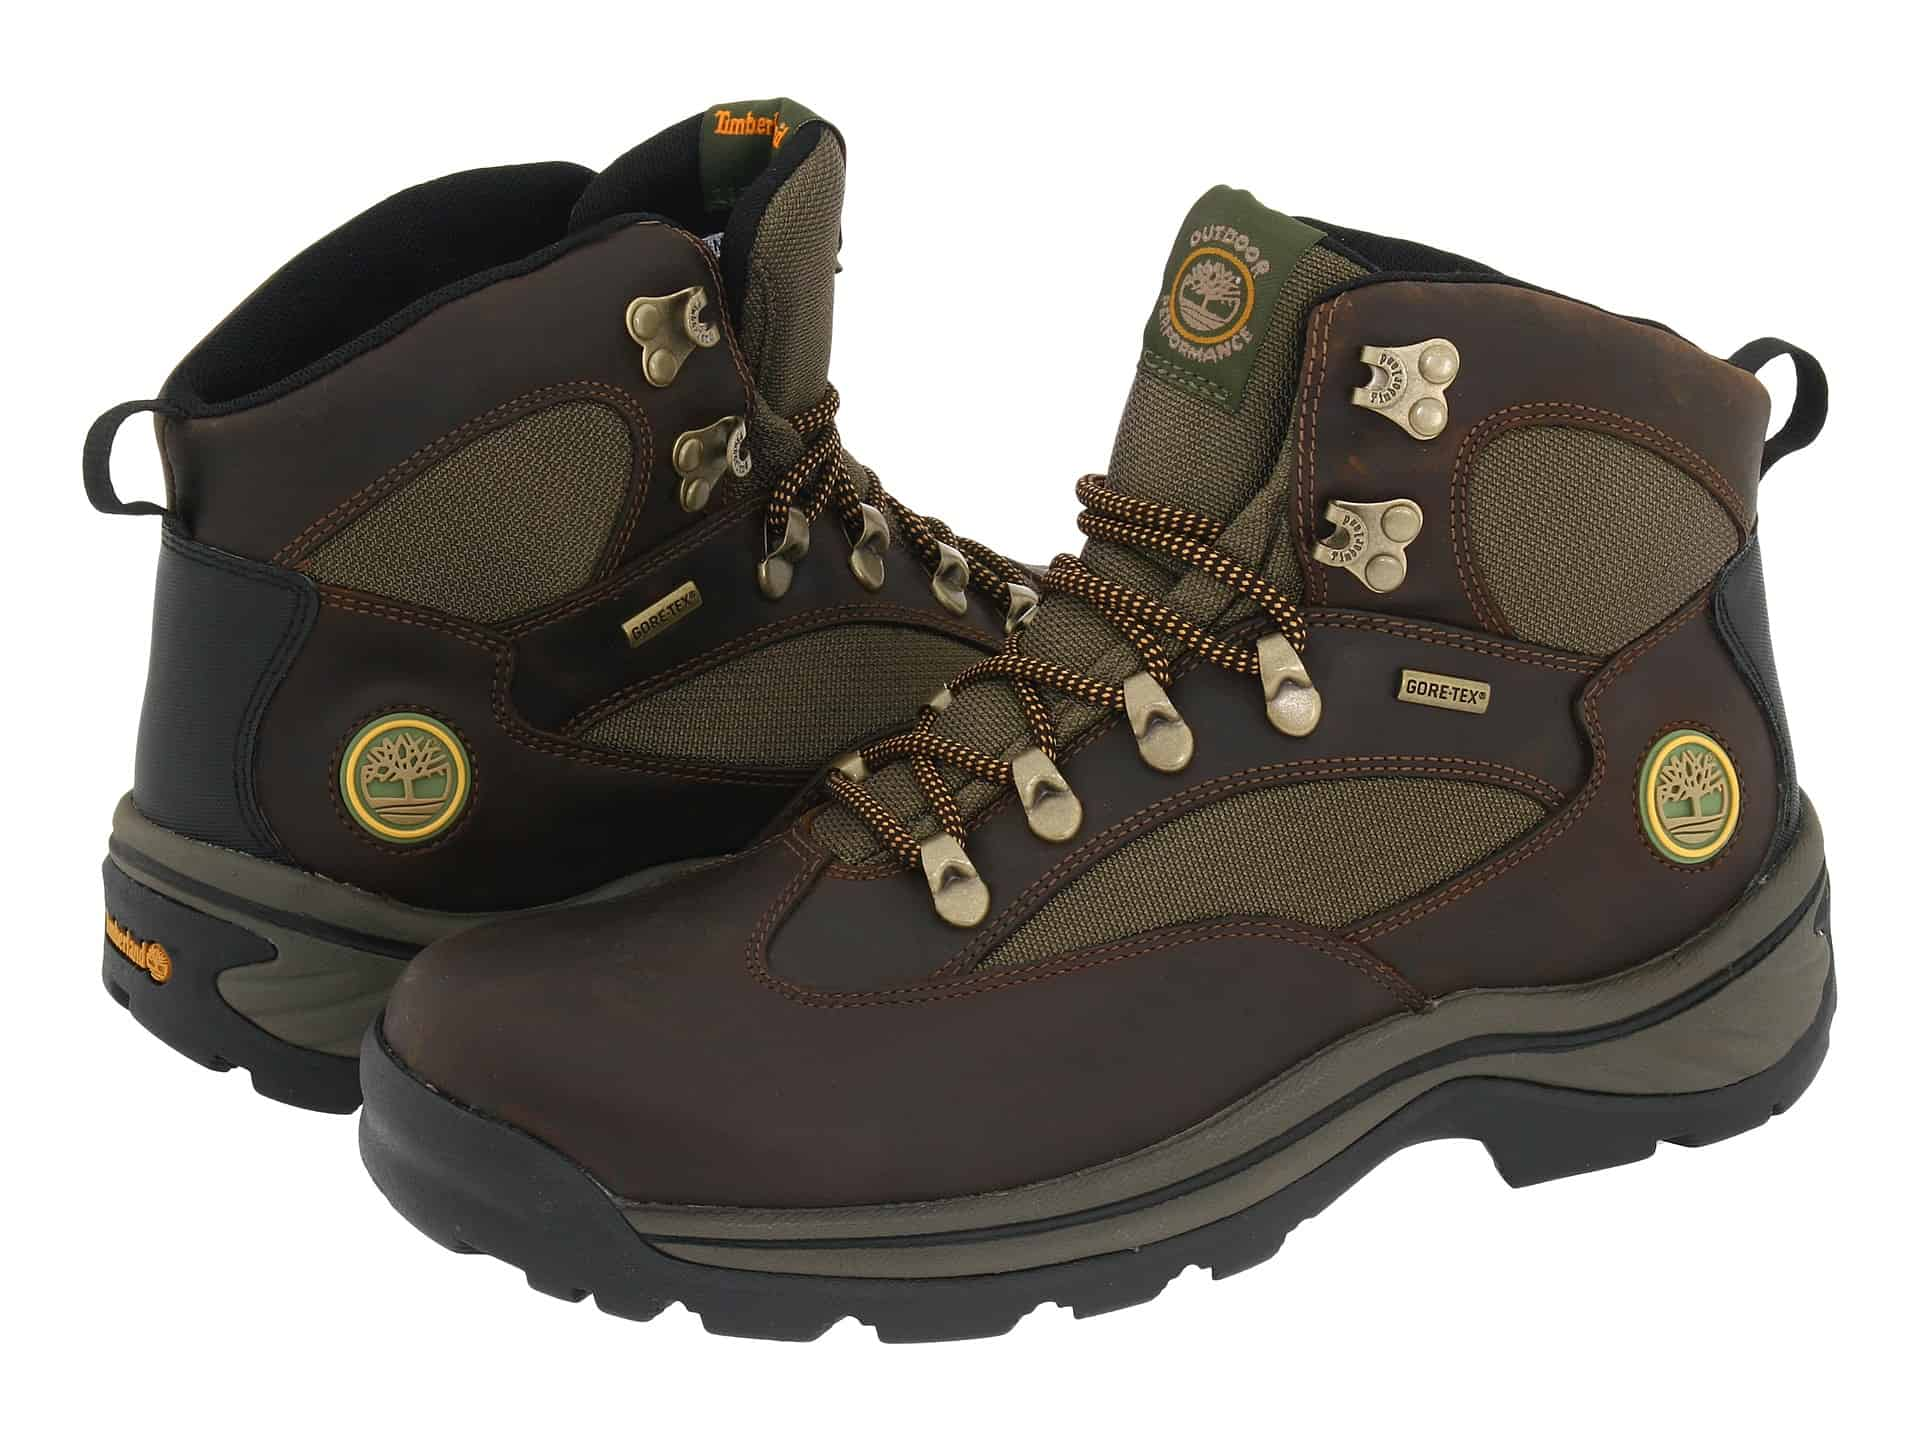 timberland ledge mid gore-tex hiker boots